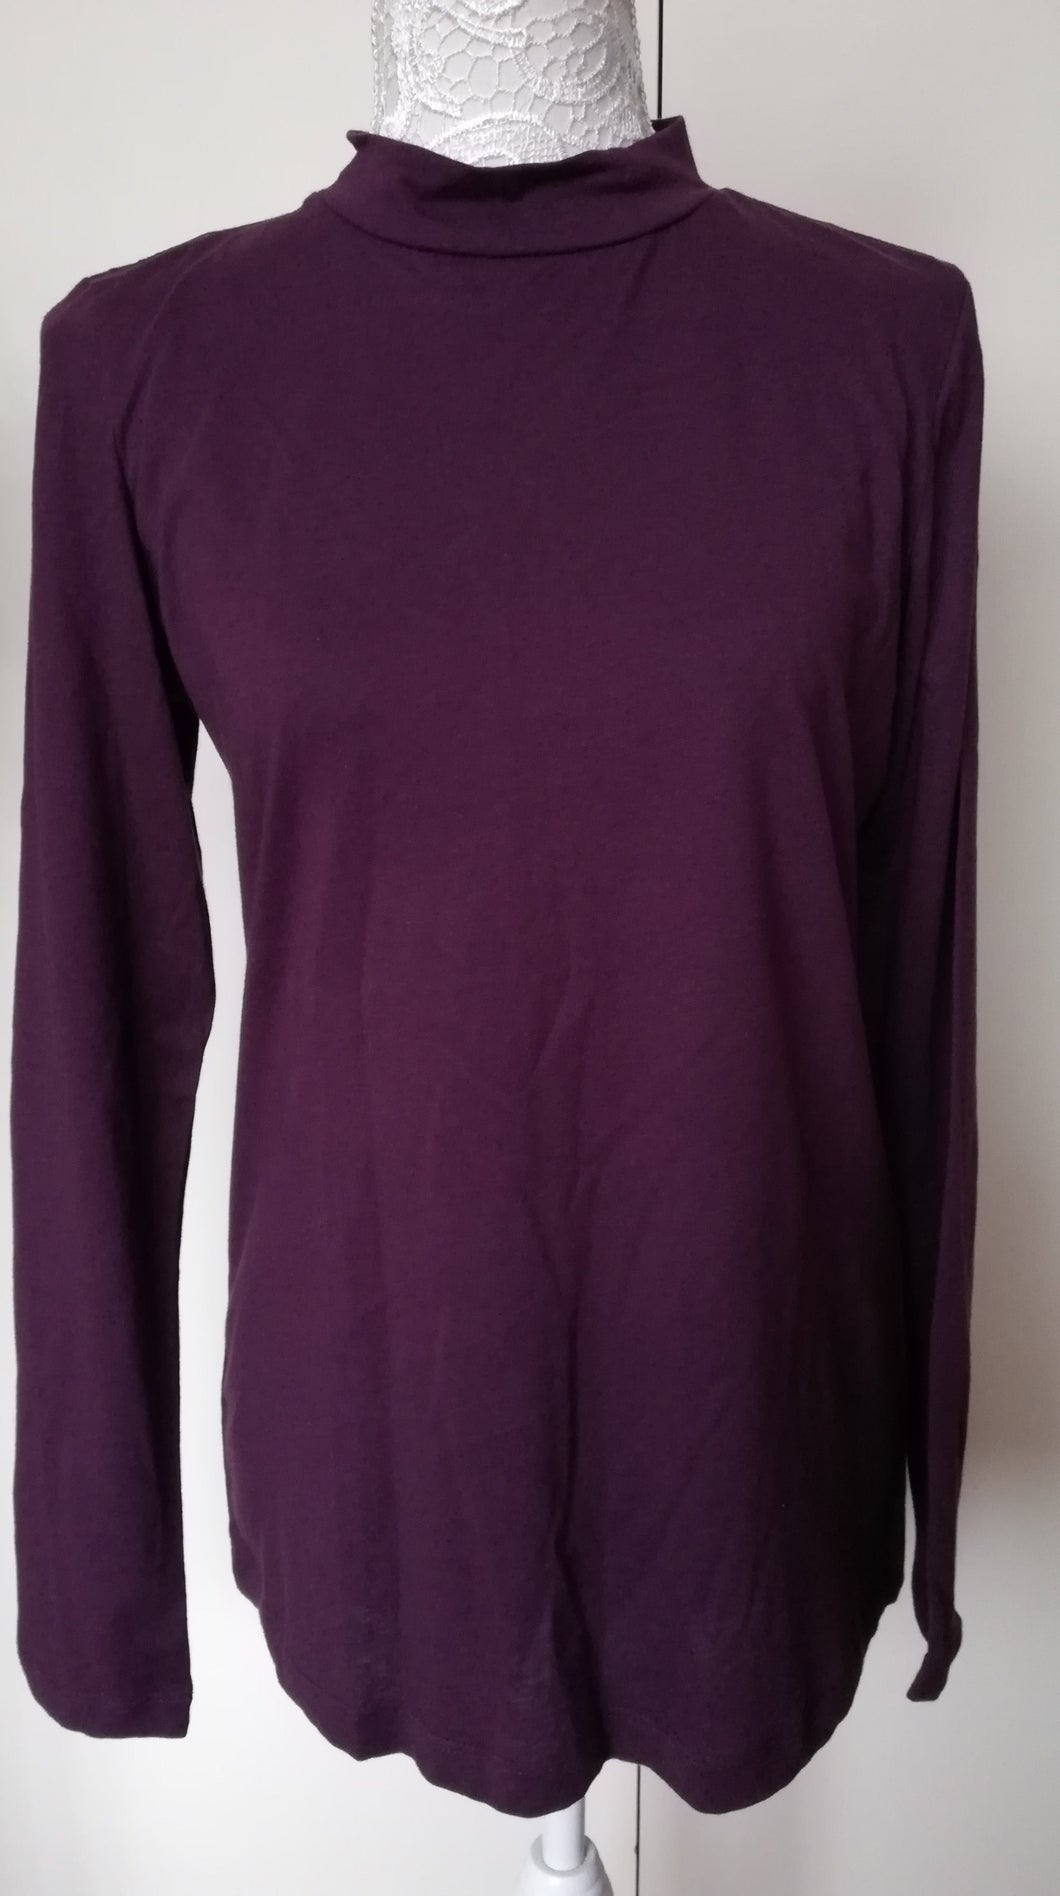 Lily & Me fig turtle neck top size 14